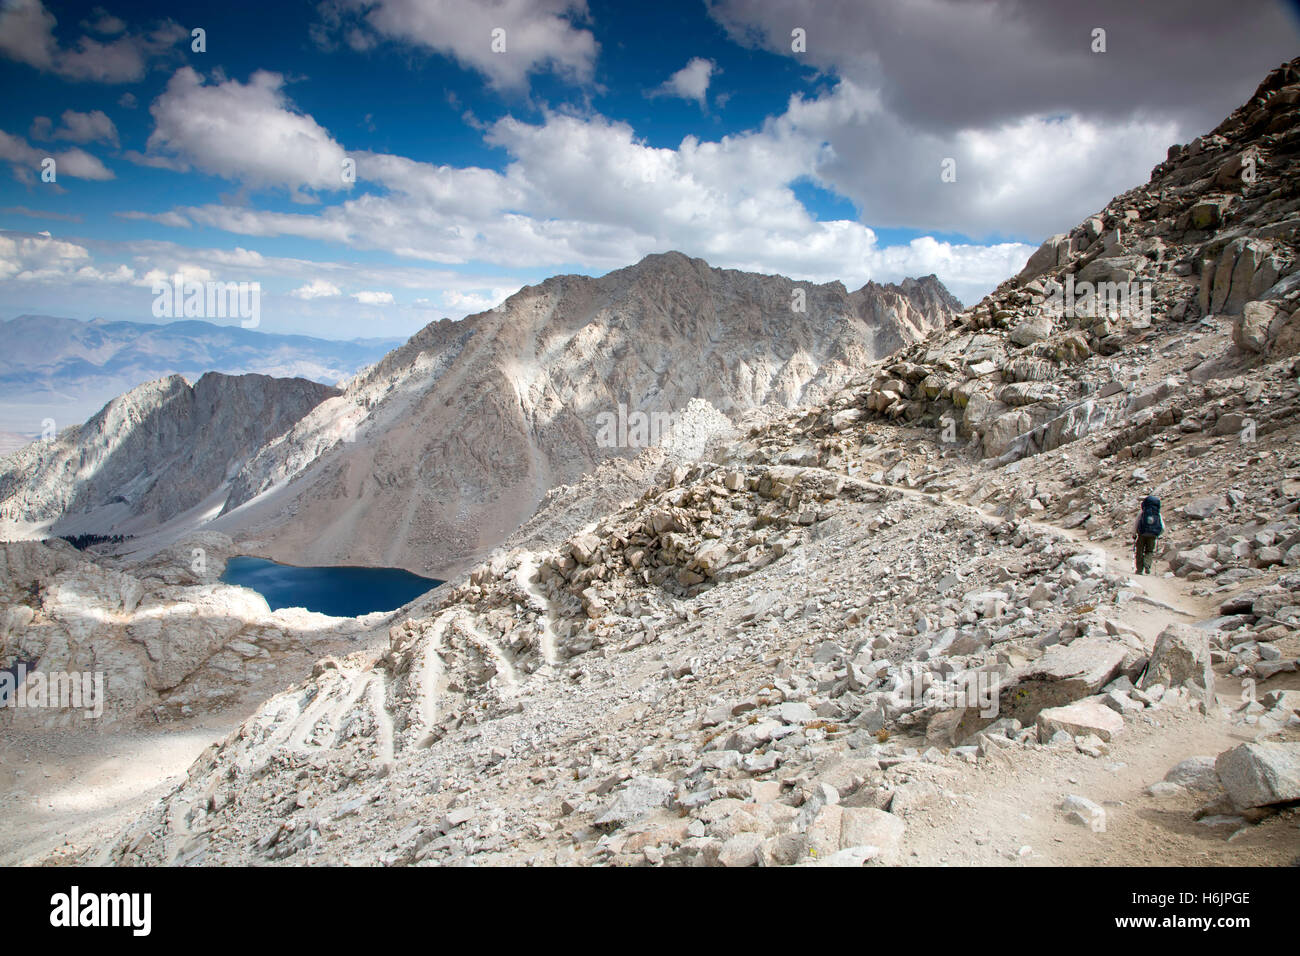 A single hiker on the long, John Muir Trail leading up to Mt. Whitney in the Sierra Mountains of California. - Stock Image